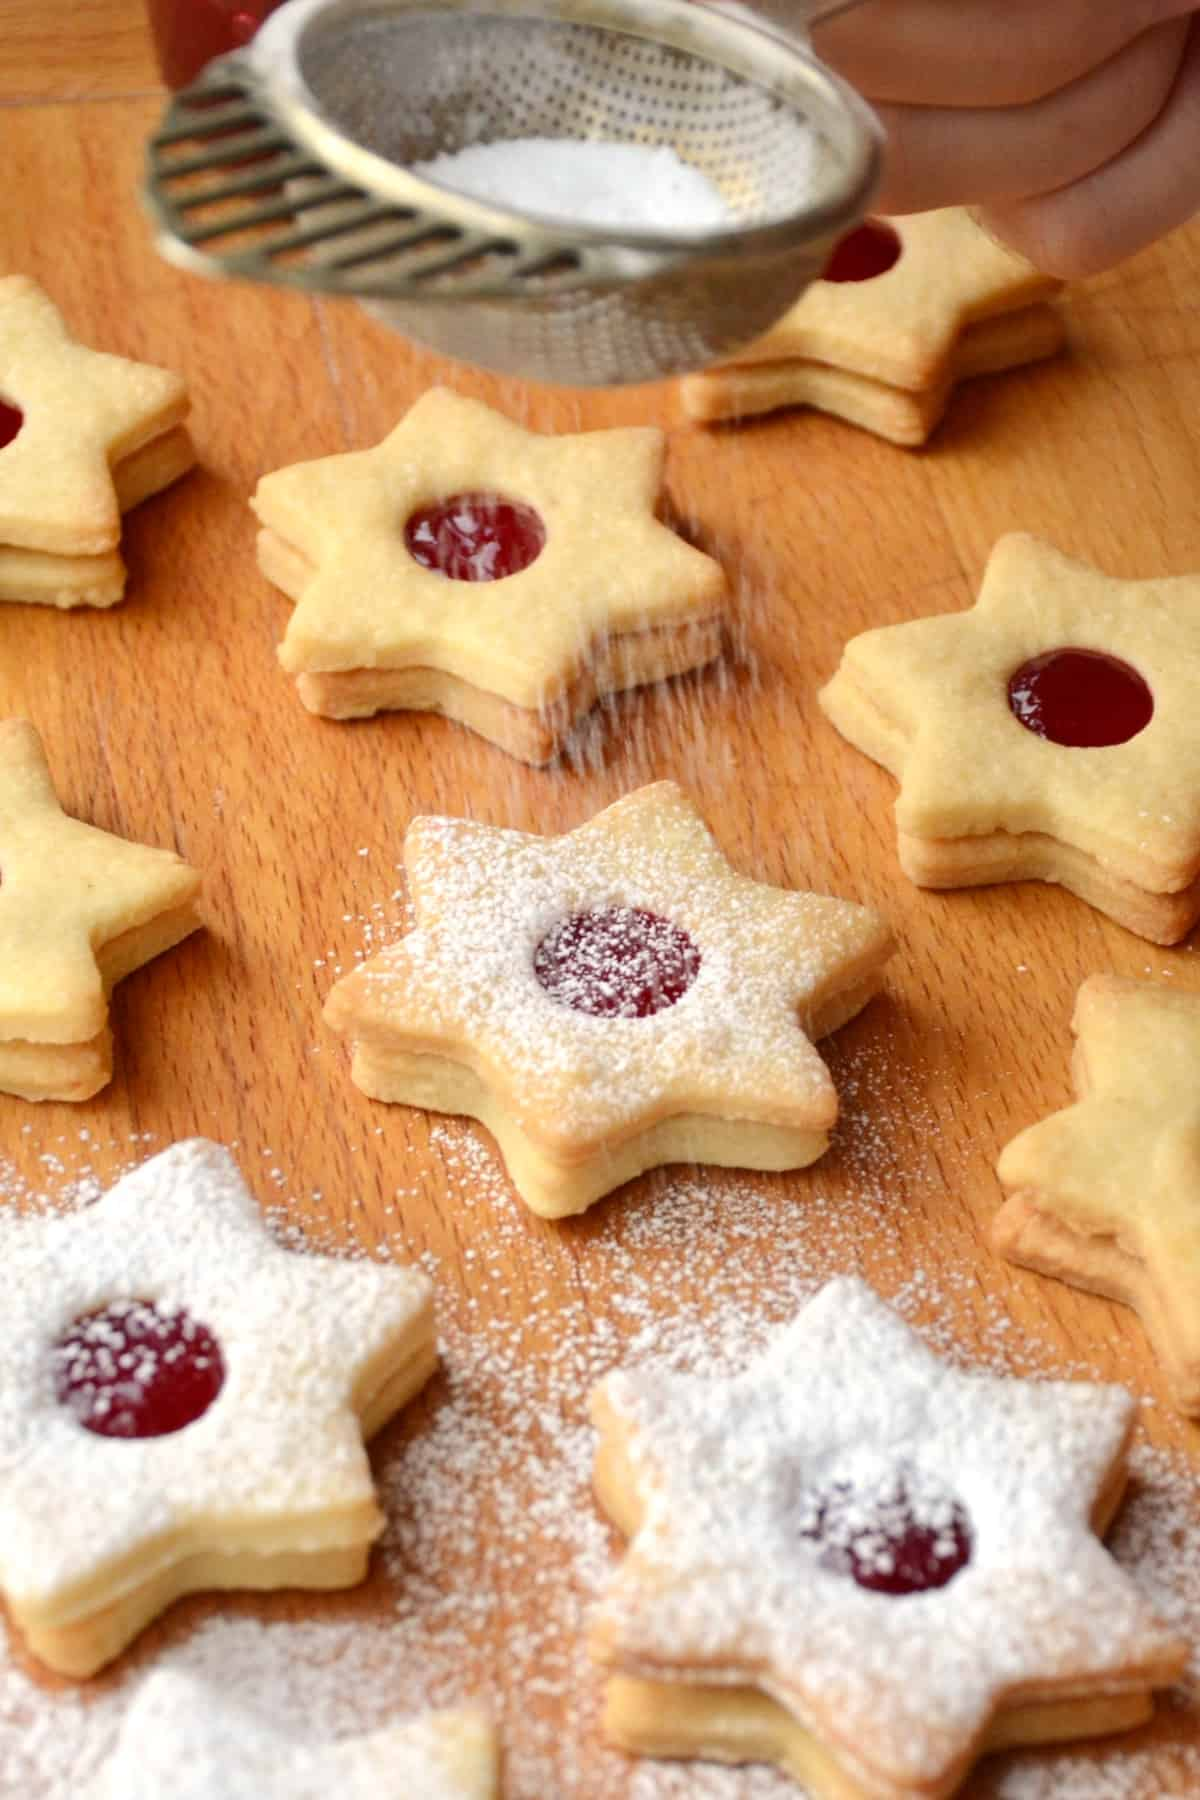 Icing sugar is dusted onto the cookies and melts on the jam that is exposed through the round openings in the cookie tops.